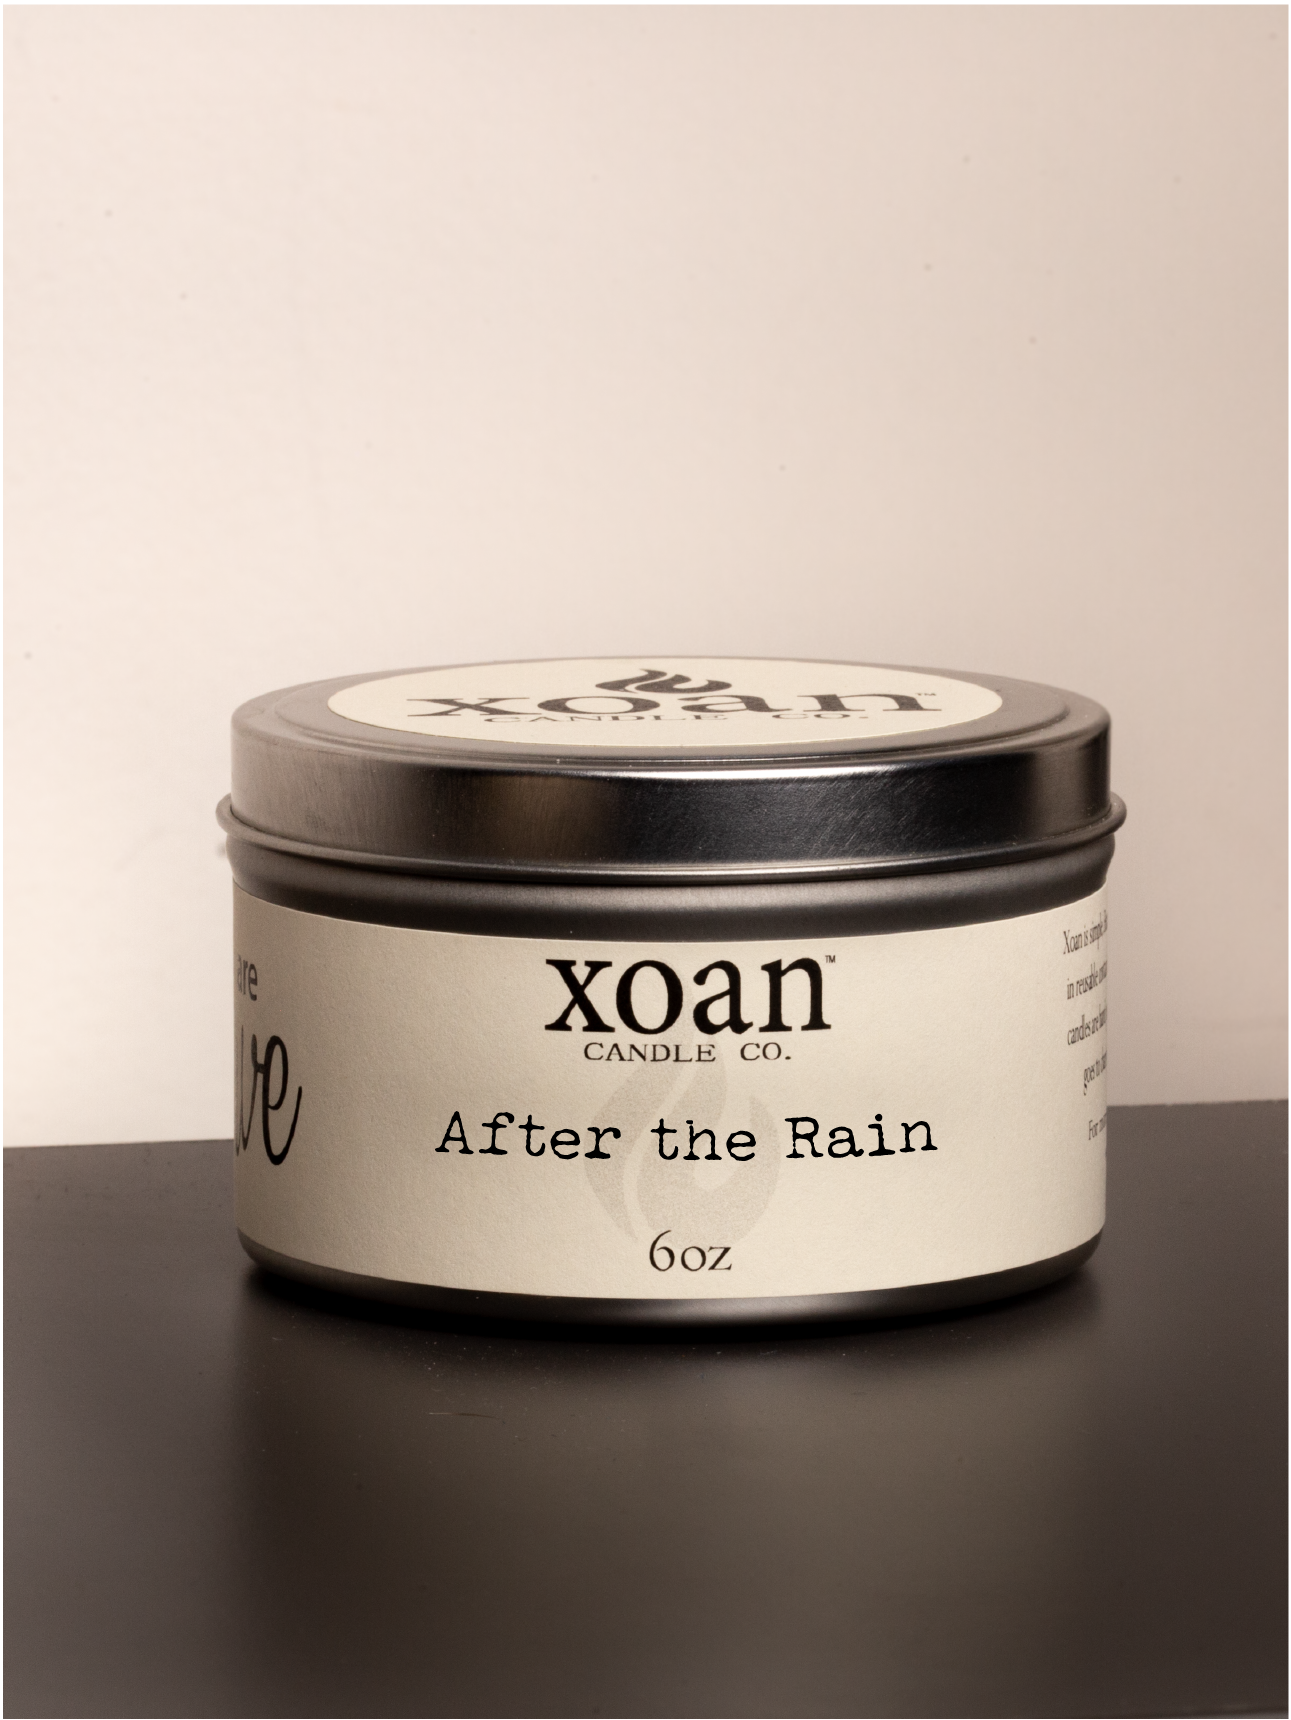 After the Rain - 6oz Candle